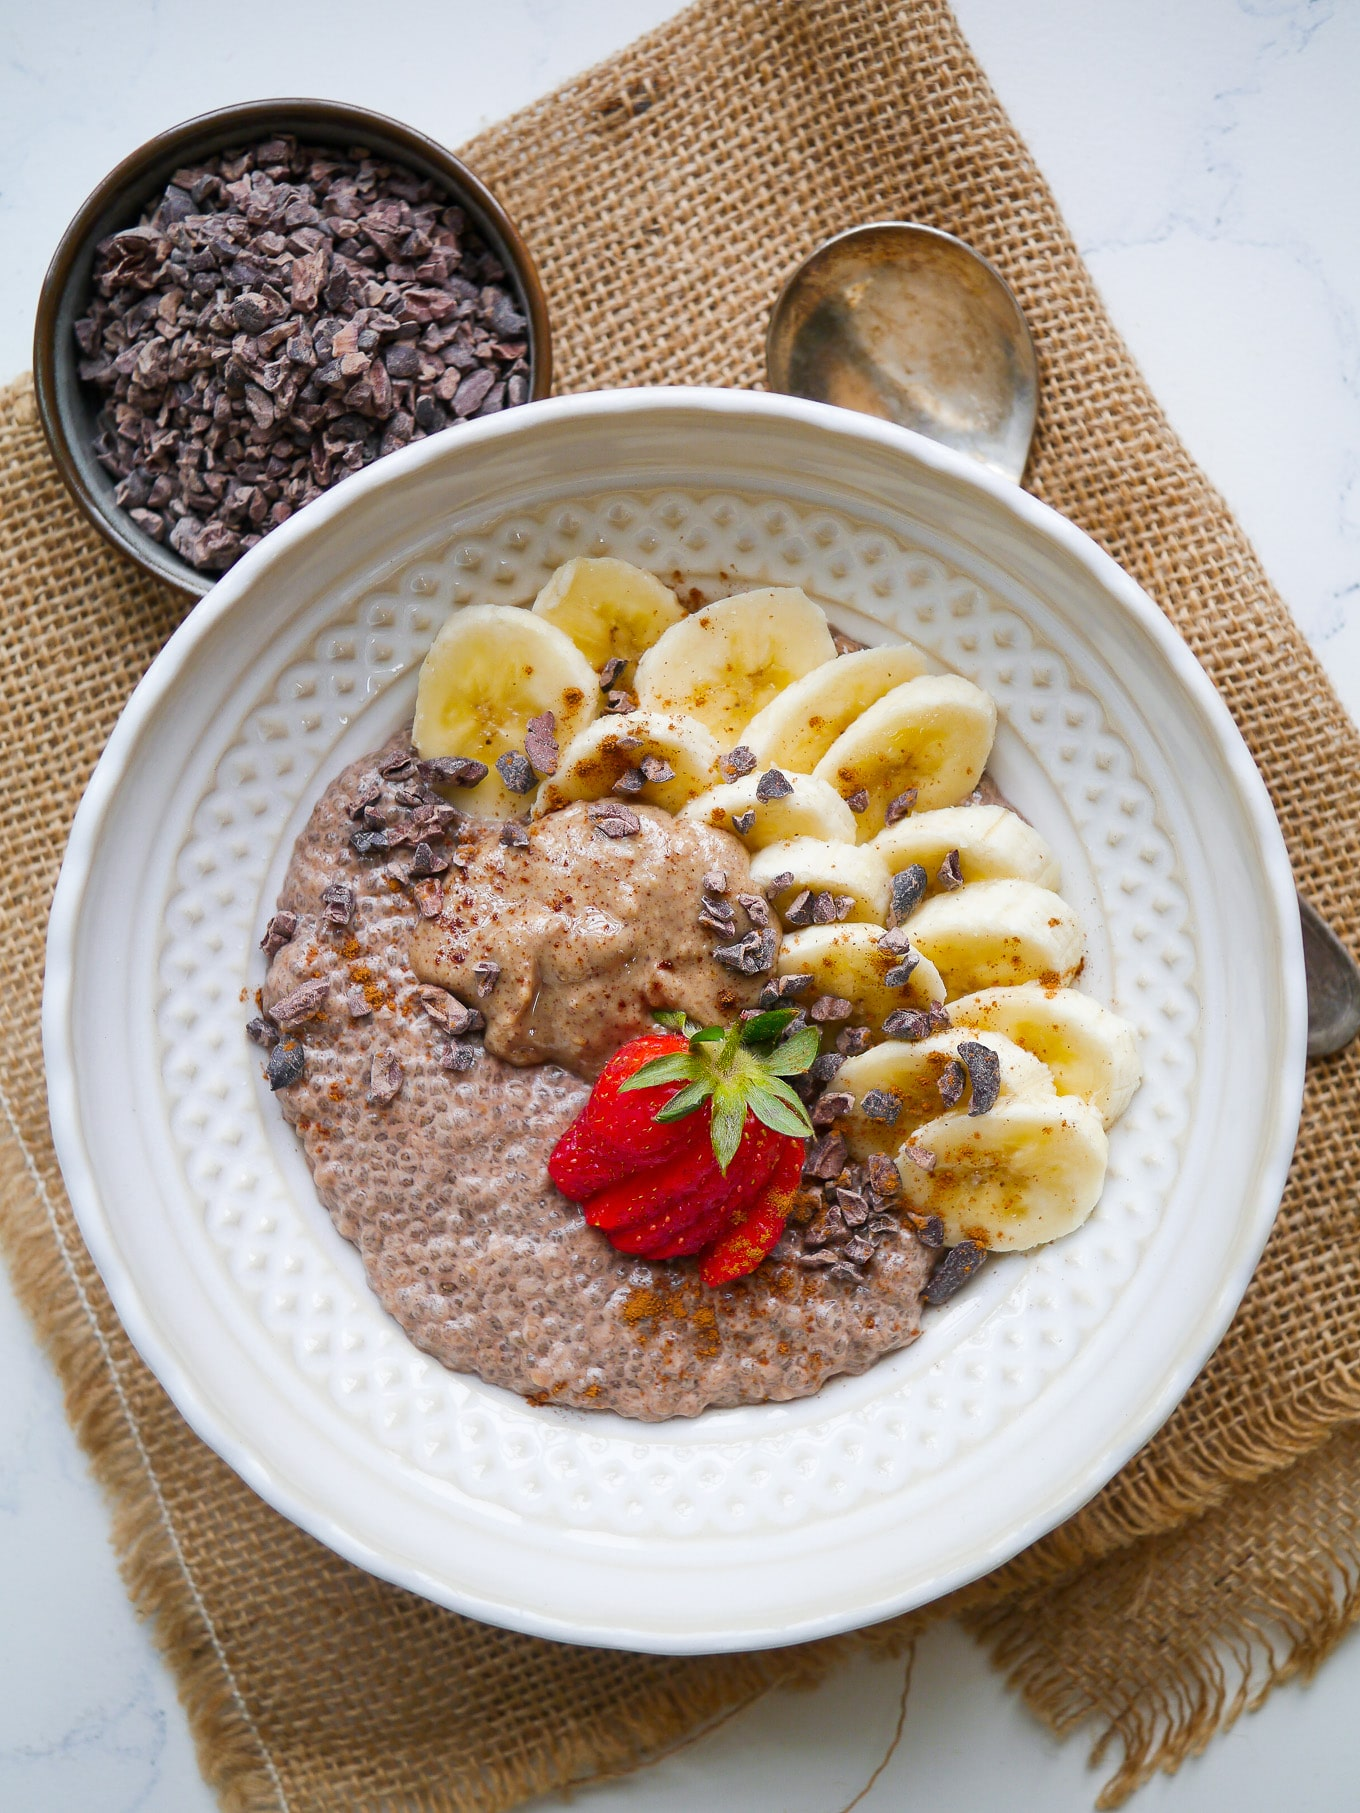 Easy chunky monkey chia pudding is a great healthy breakfast or snack; maybe even dessert! Cacao chia base, sweet banana, creamy peanut butter and crunchy cacao nibs. Gluten free, dairy free and grain free.